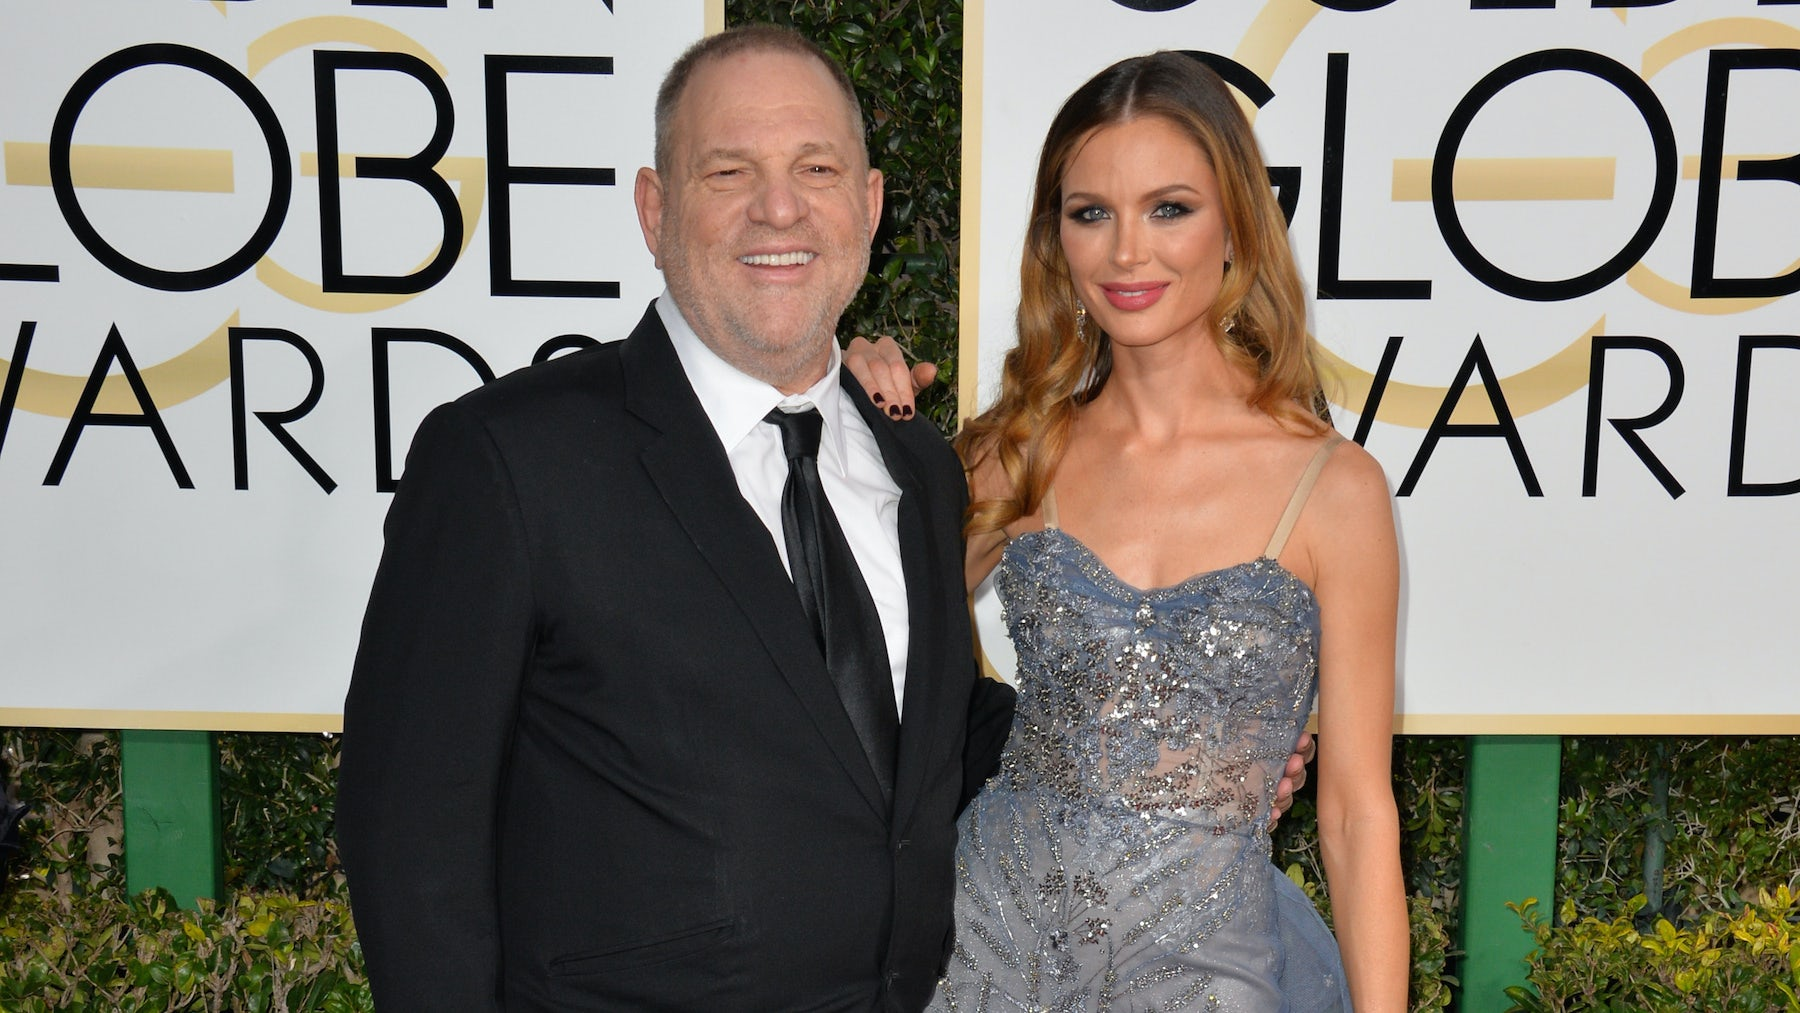 Harvey Weinstein and Georgina Chapman | Source: Shutterstock